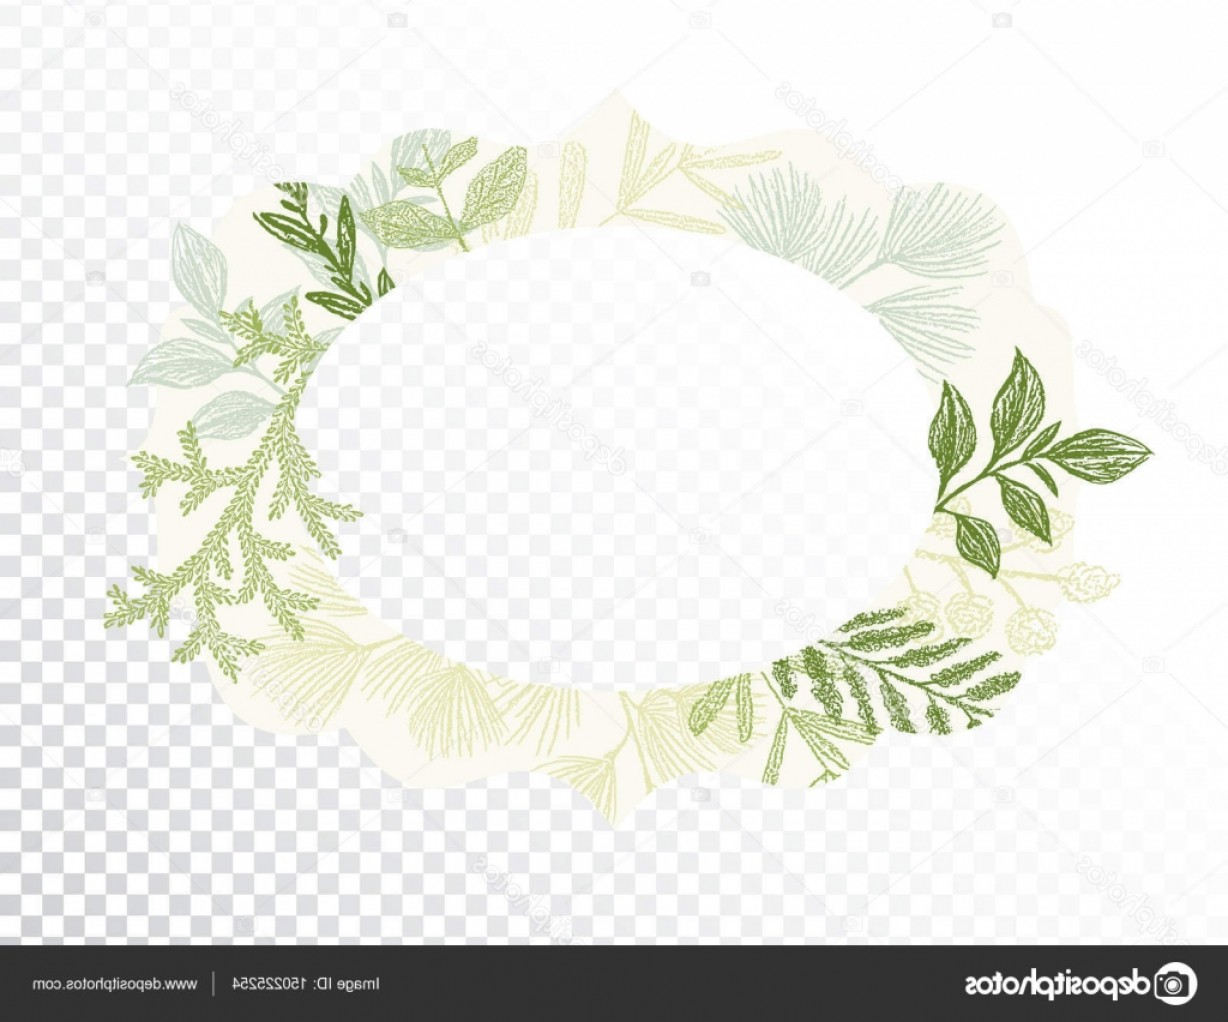 Green Oval Border Vector: Stock Illustration Oval Border With Branches And